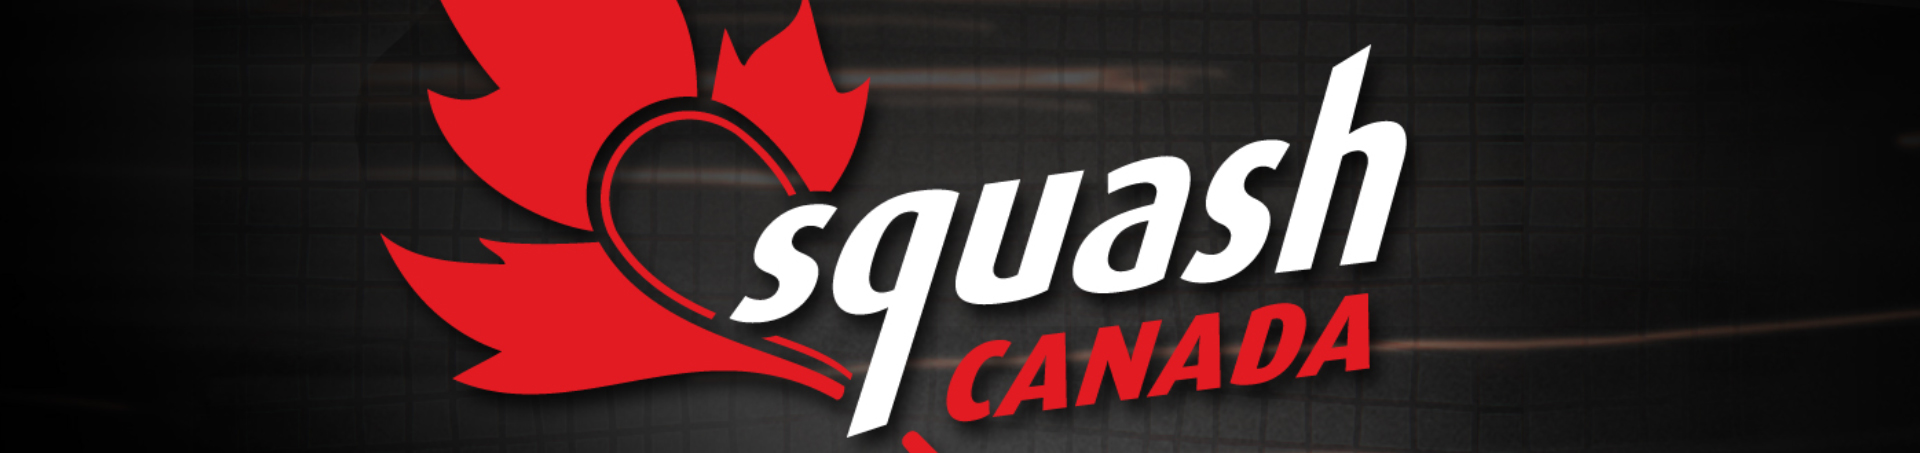 Image of the logo we created for Squash Canada as part of their sports and entertainment marketing and branding campaign, marketing for Squash events, Squash Canada branding, sports brand logos